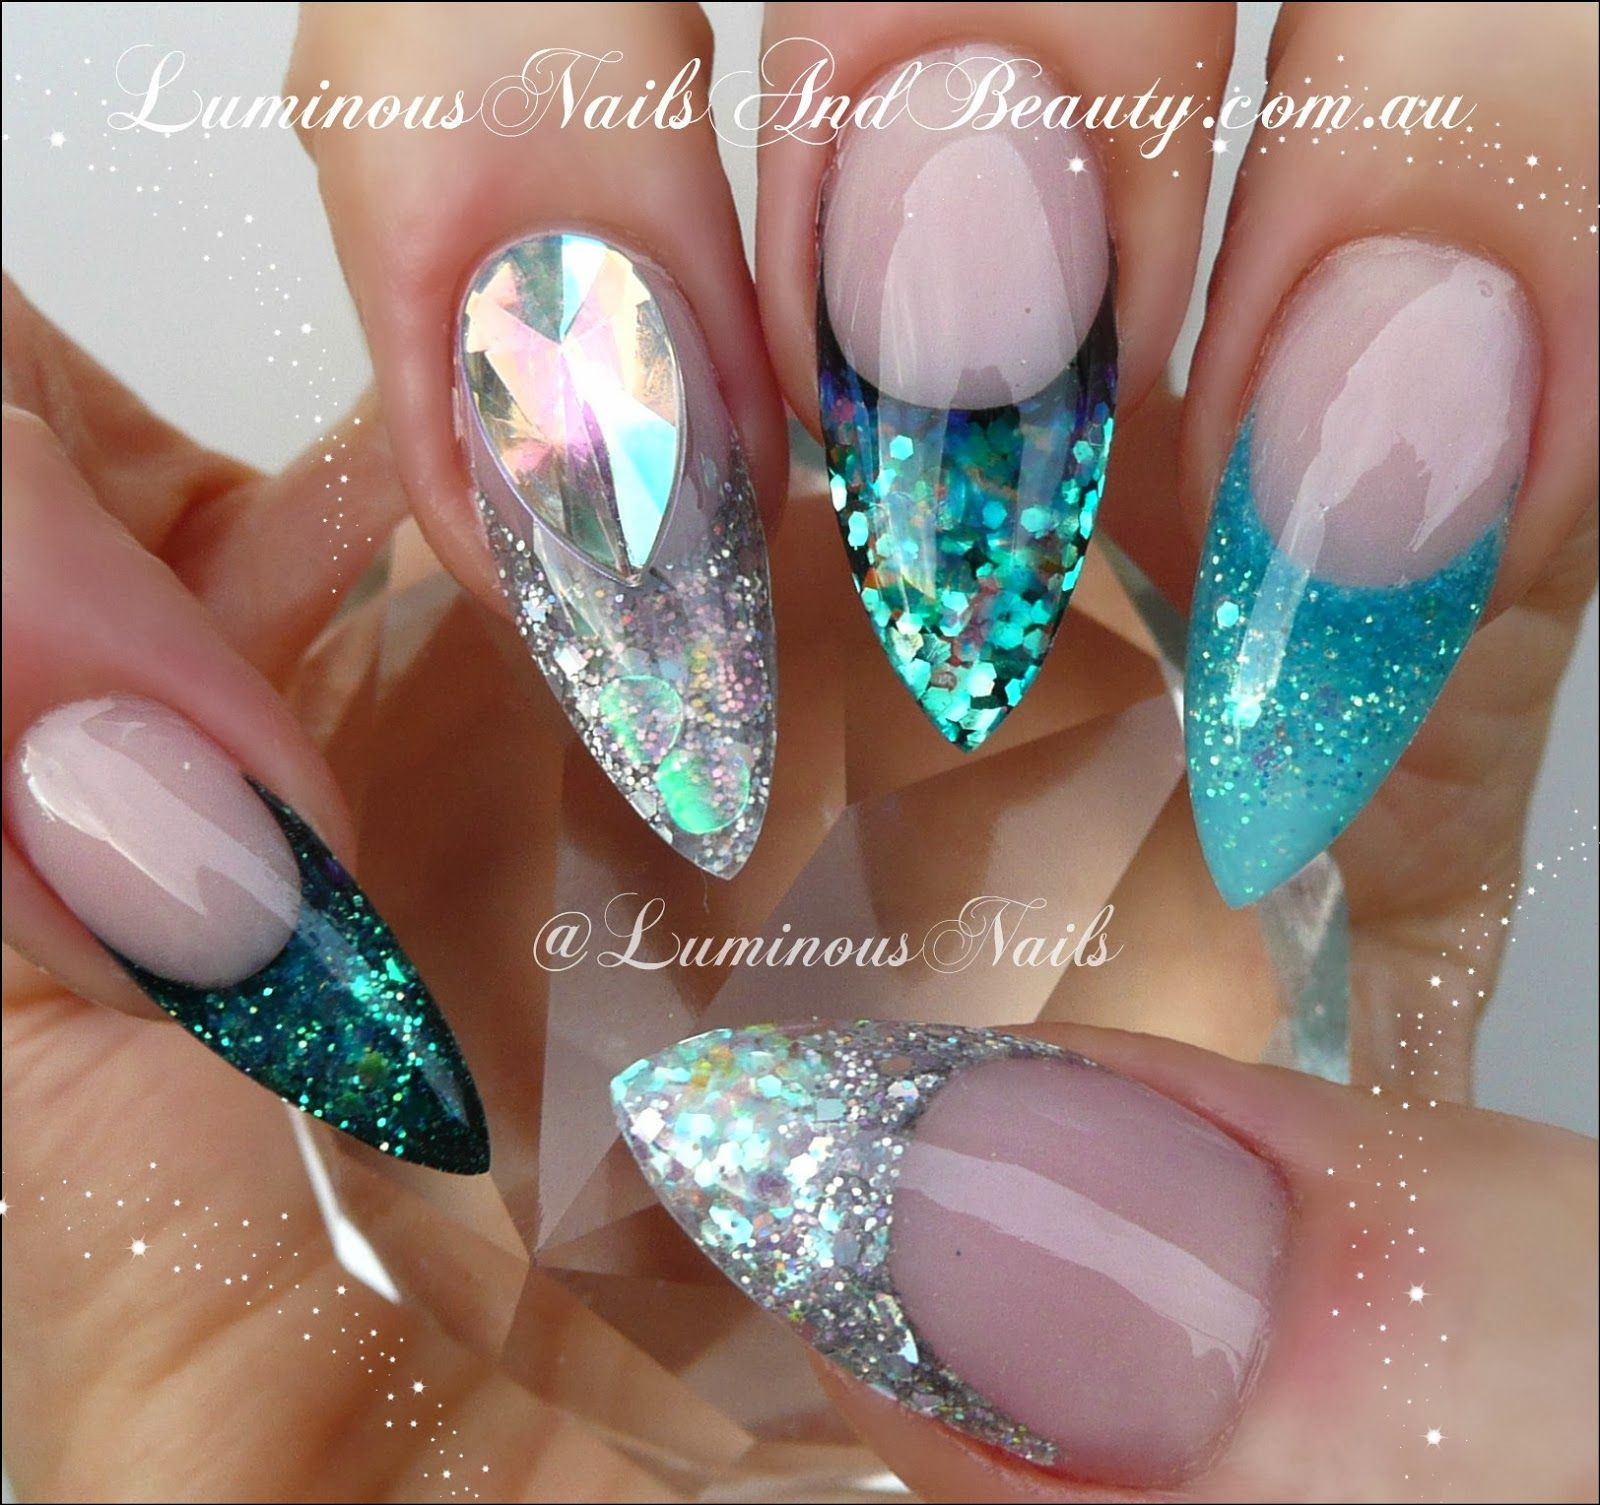 Pin de Alma en Beauty n nails | Pinterest | Manicuras, Arte uñas y ...